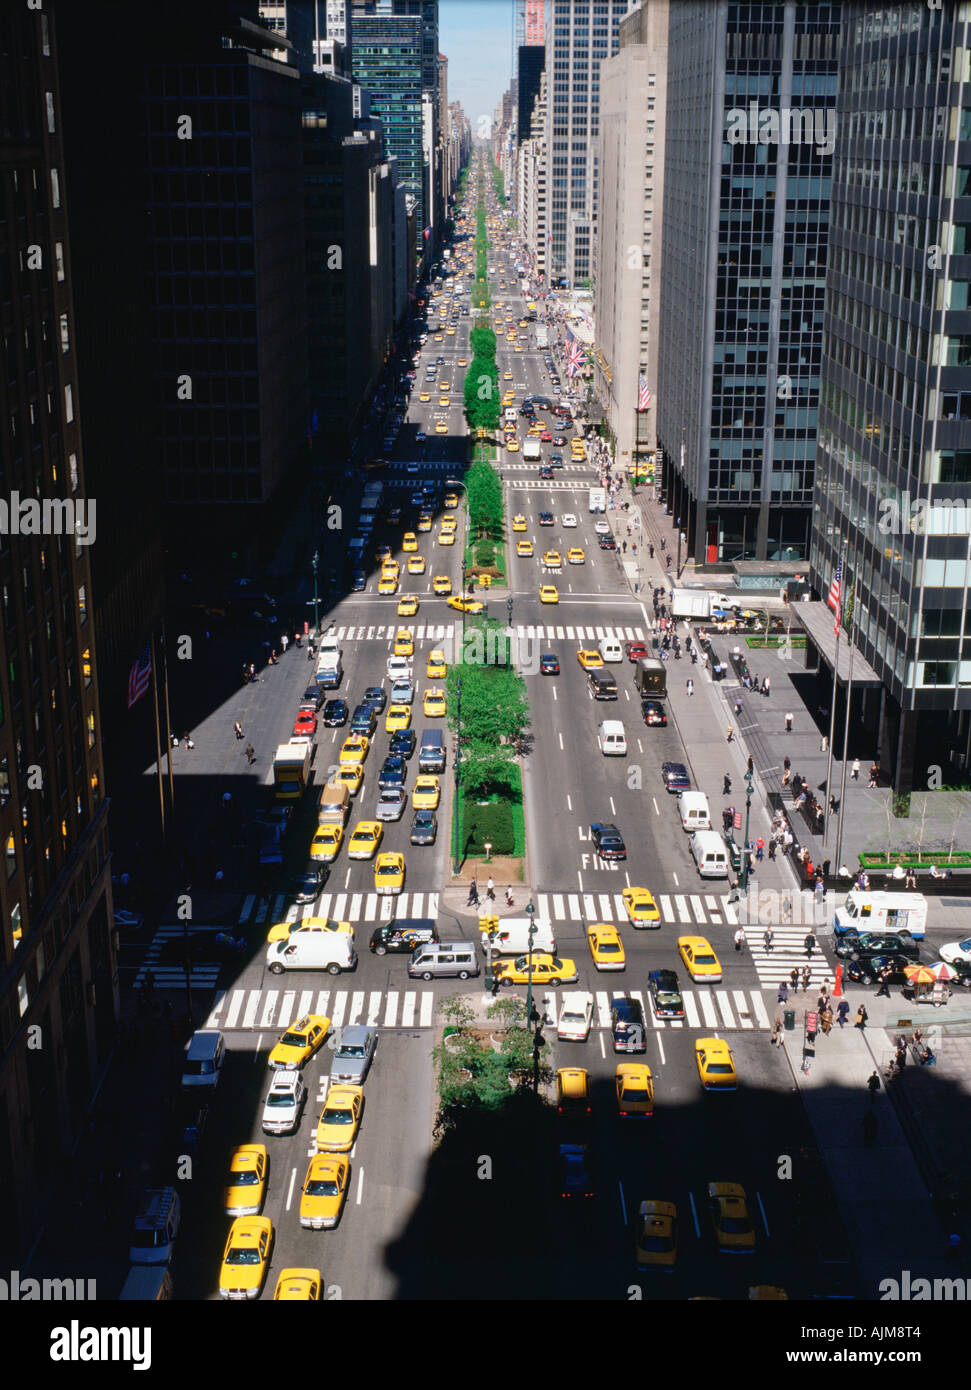 Aerial View Of Park Avenue New York City Stock Photo